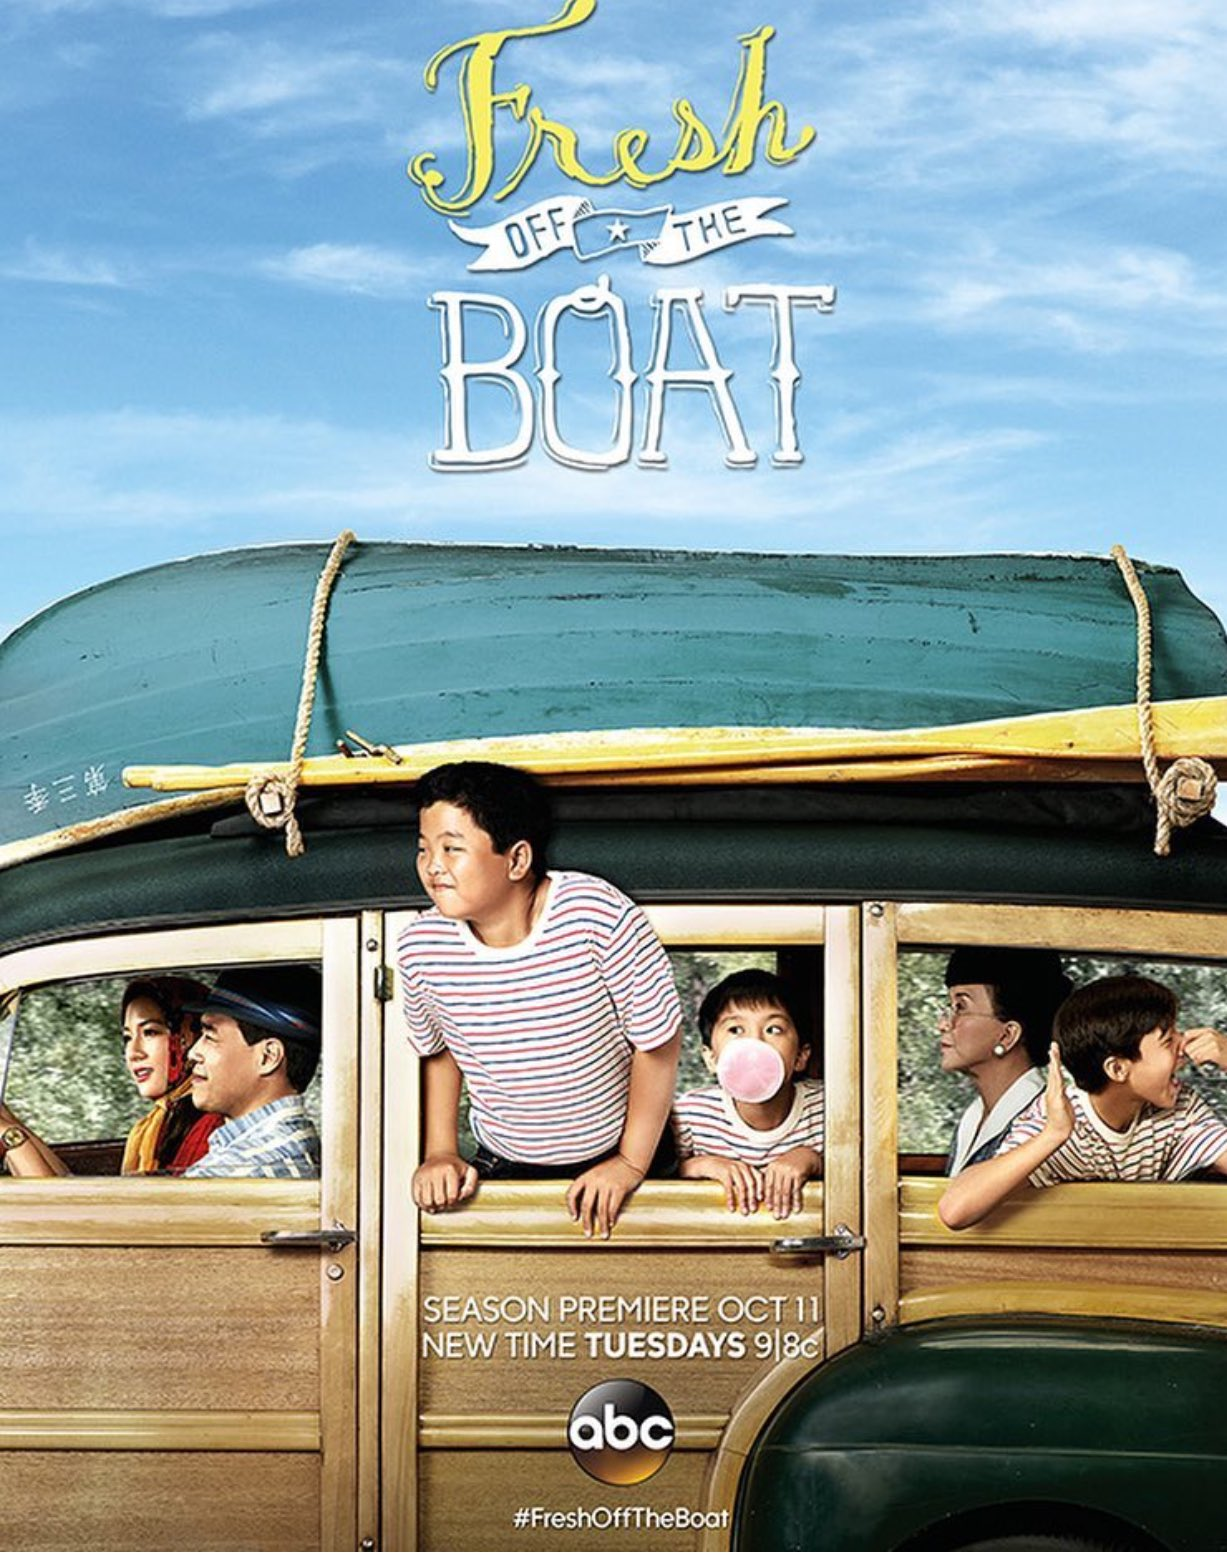 """RT @TheIanChen: Love our #FreshOfftheBoat season 3 poster, inspired by Norman Rockwell's """"Going and Coming"""" https://t.co/evYIFTgfY4"""